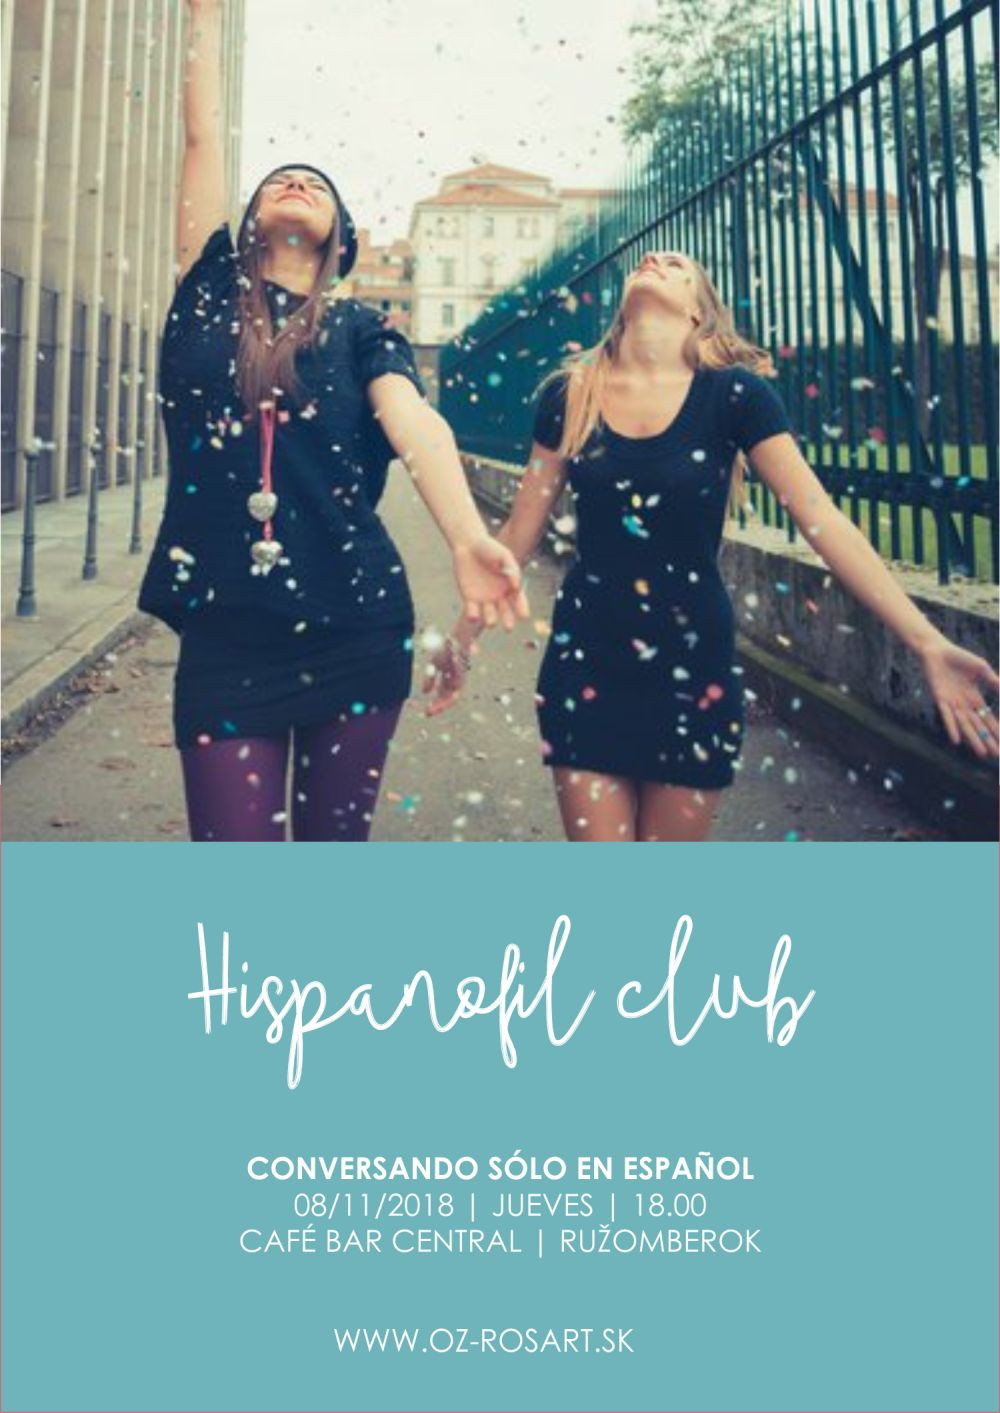 Hispanifil Club plagat 08 11 2018